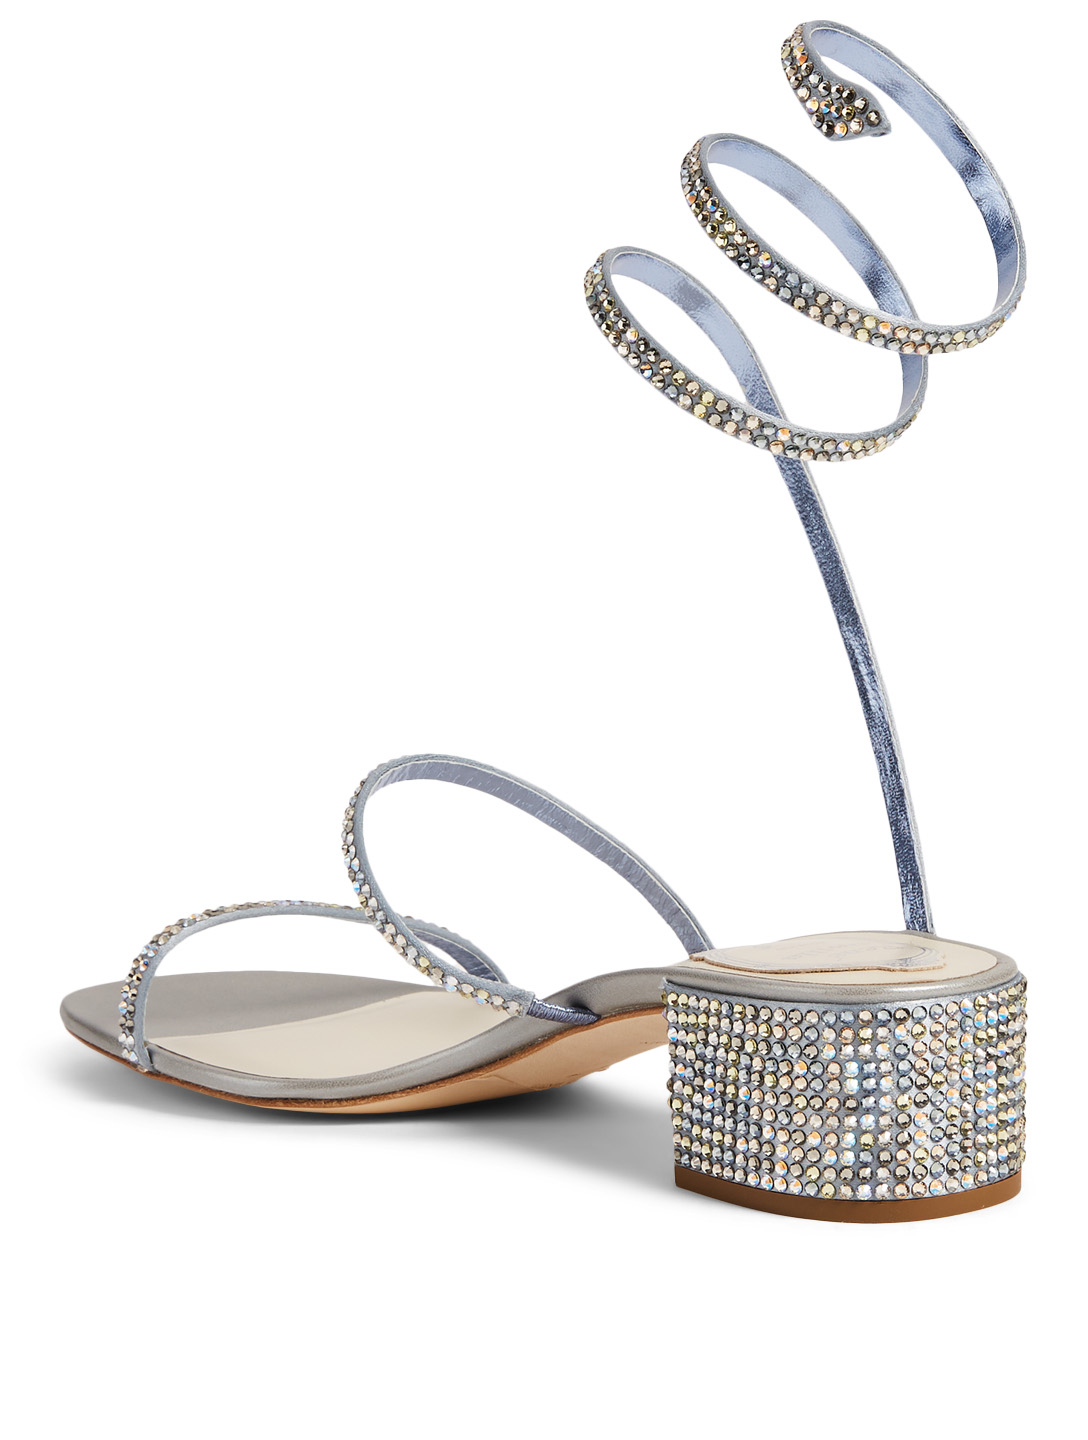 RENE CAOVILLA Cleo Rainbow 40 Satin Crystal Coil Heeled Sandals Women's Metallic